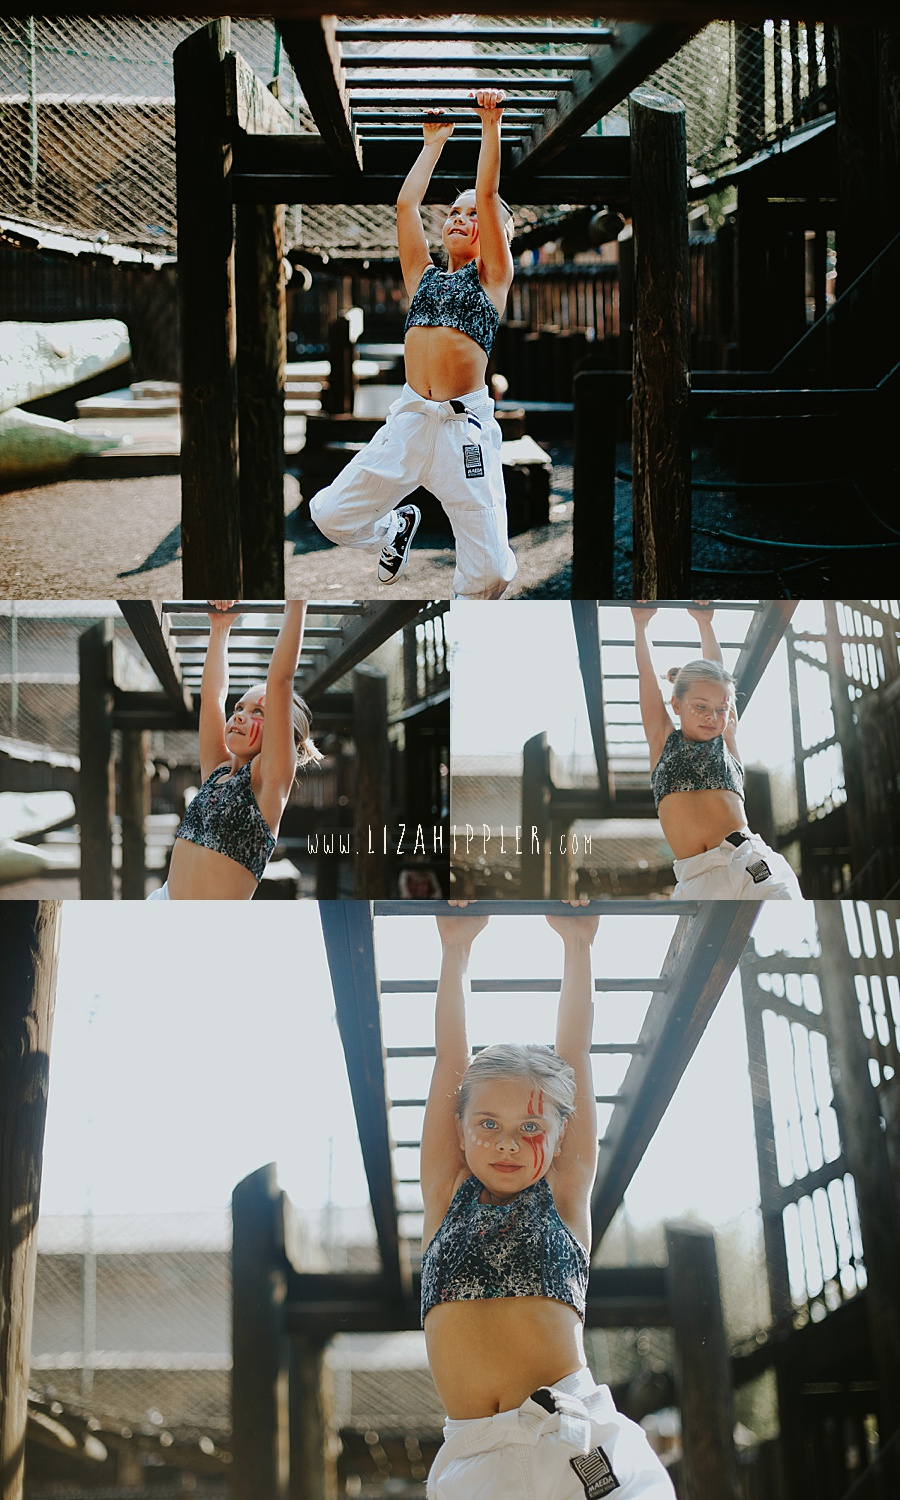 young girl in karate uniform goes across the monkey bars